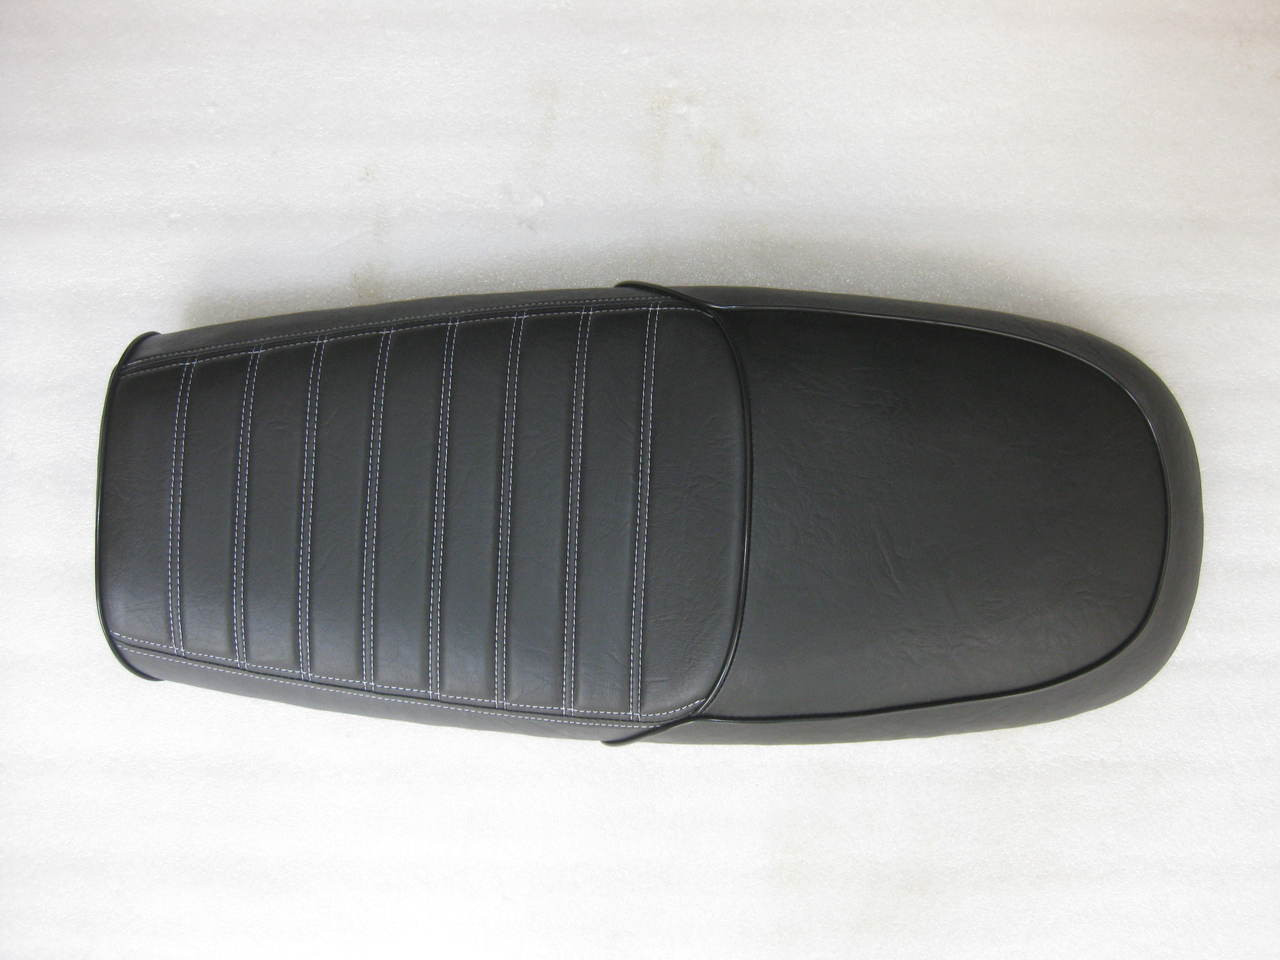 1980 - 1982 Honda CB750C CB750 C or  1982 - 1983 CB750SC Nighthawk Cafe Racer Complete Motorcycle Seat with Modified Seat Pan  #4206